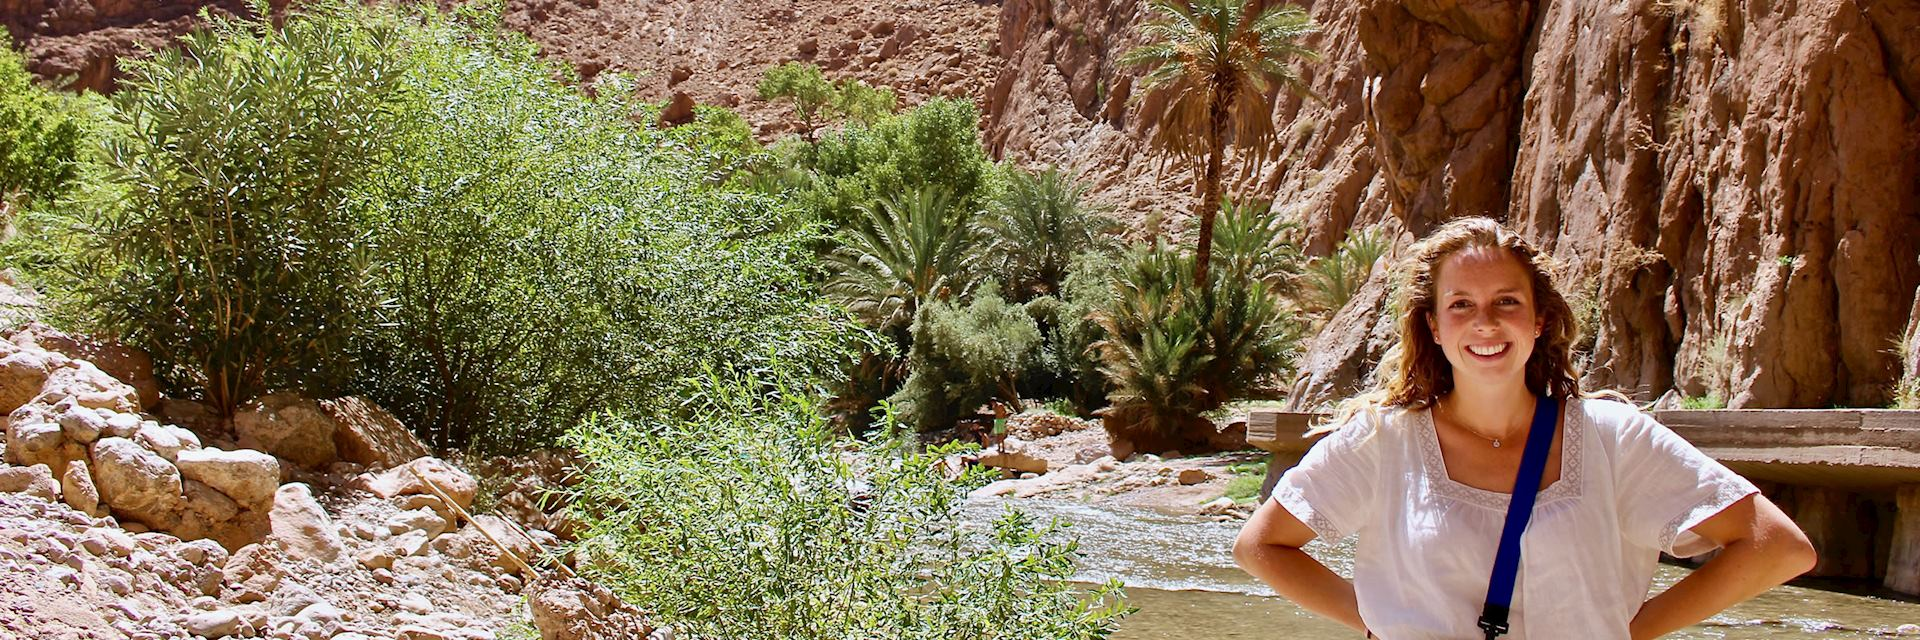 Olivia at Todra Gorge, Morocco